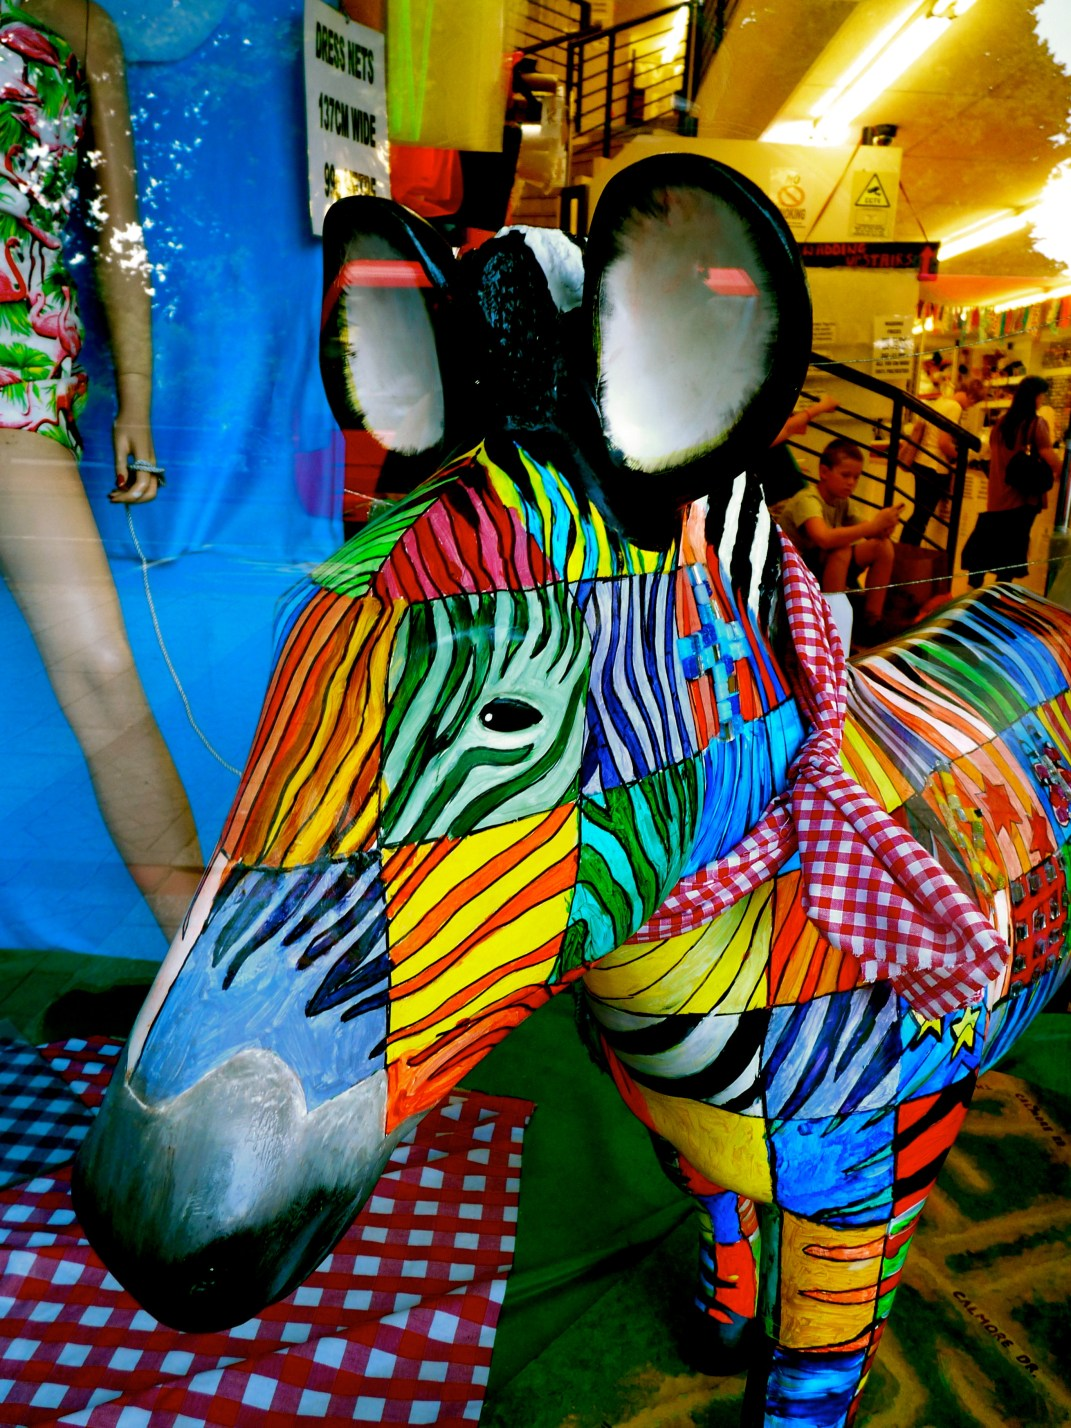 Fabric World zebra in the shop window